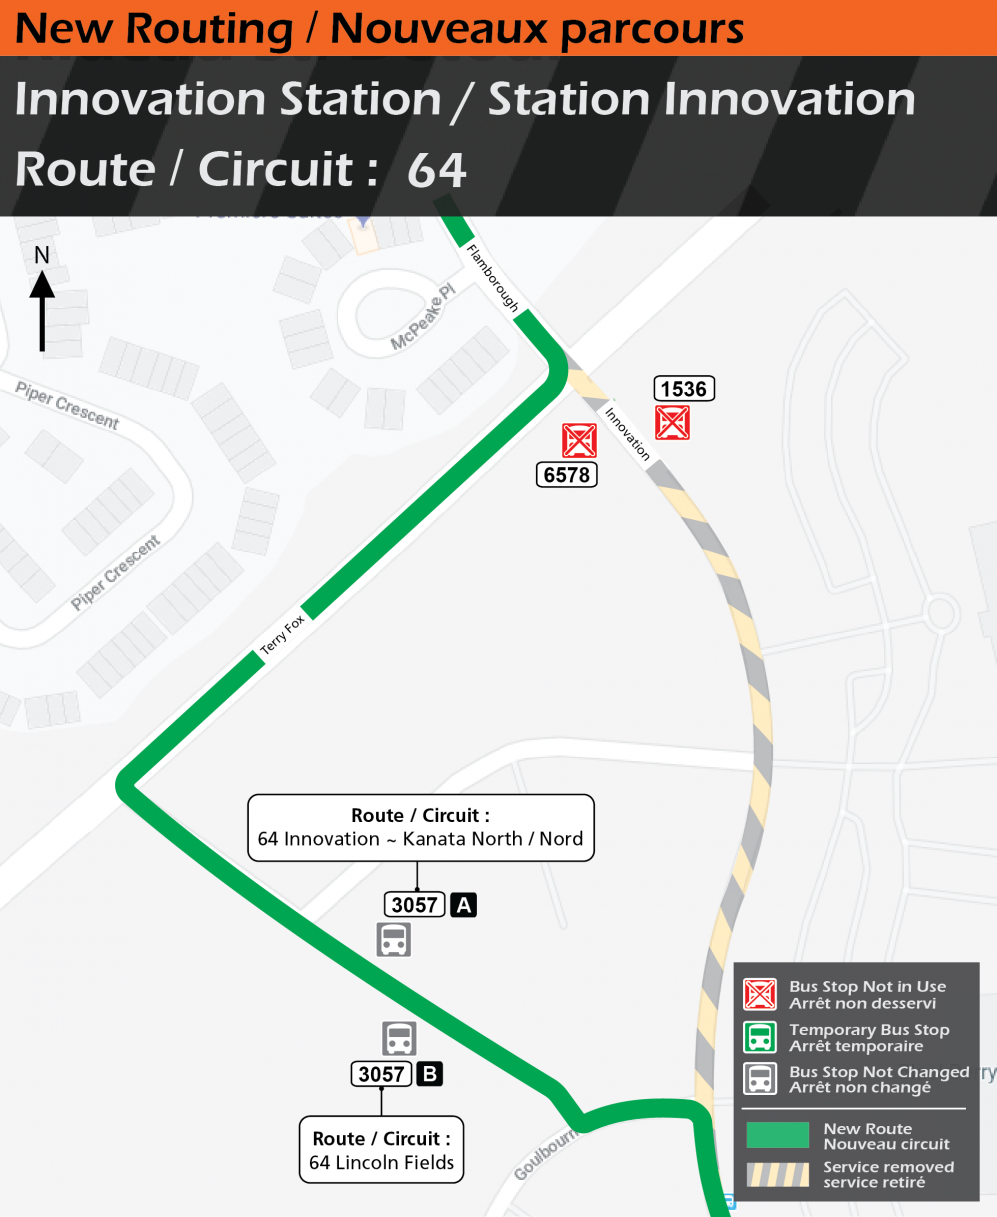 New Route 64 service at Innovation Station